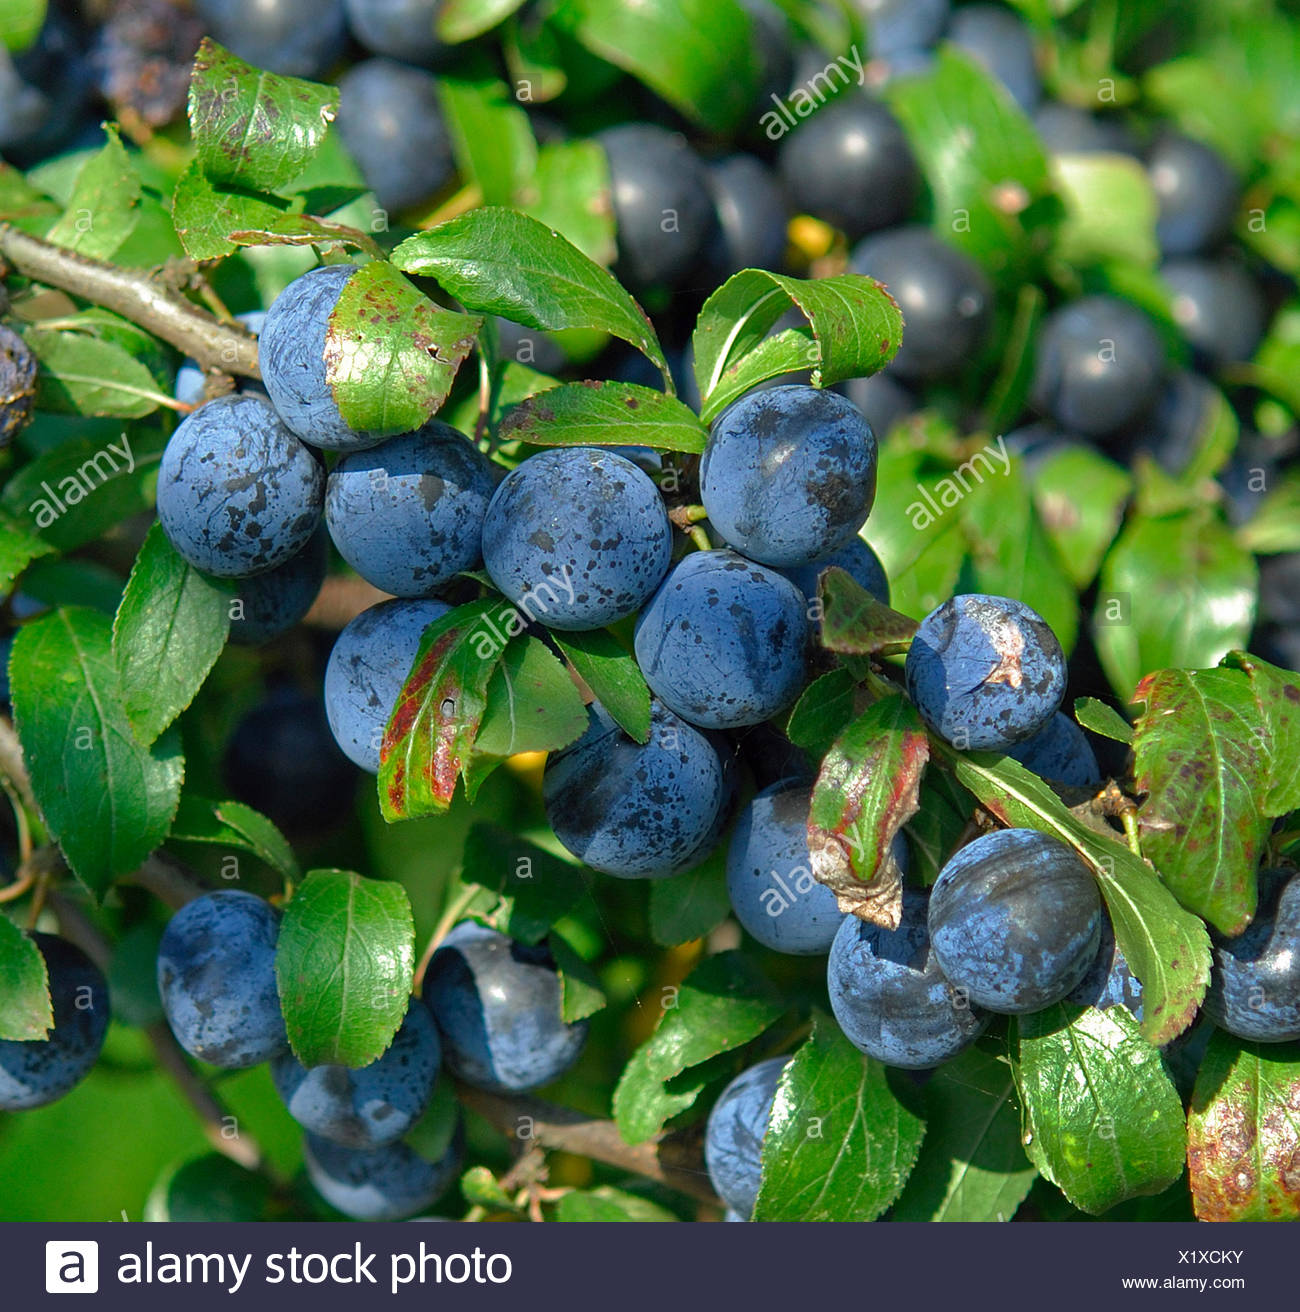 blackthorn, sloe (Prunus spinosa 'Nittel', Prunus spinosa Nittel), fruits of cultivar Nittel - Stock Image